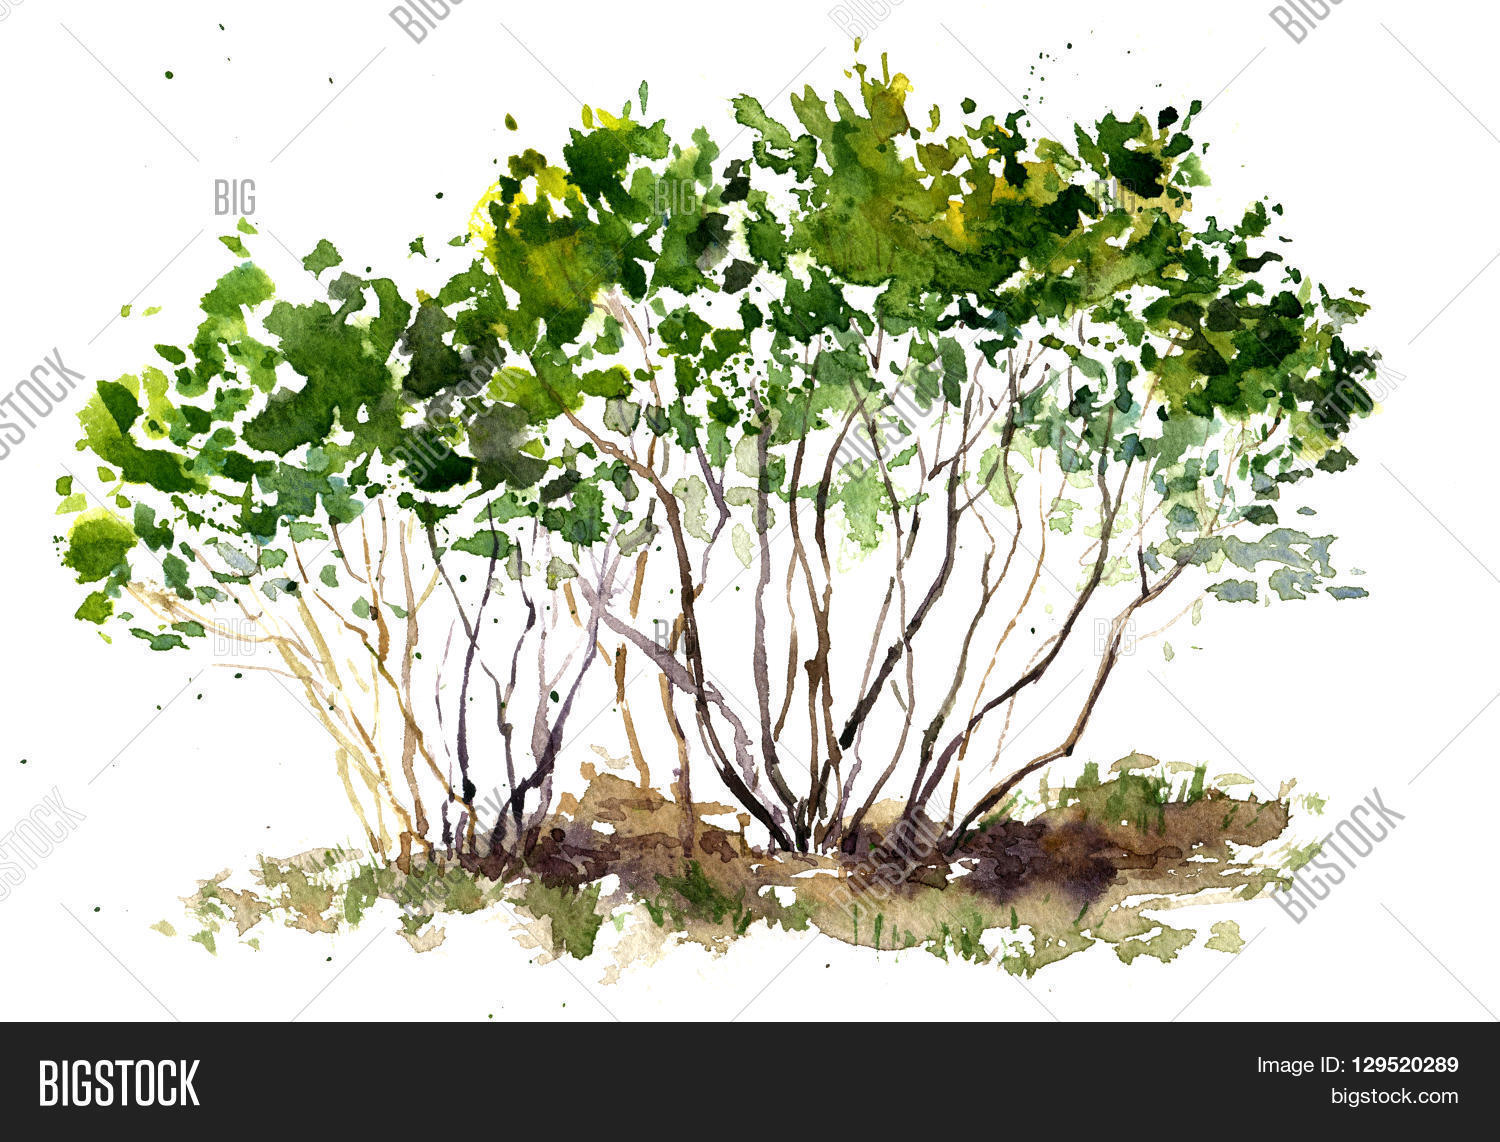 Green Bushes Drawing Image Amp Photo Free Trial Bigstock